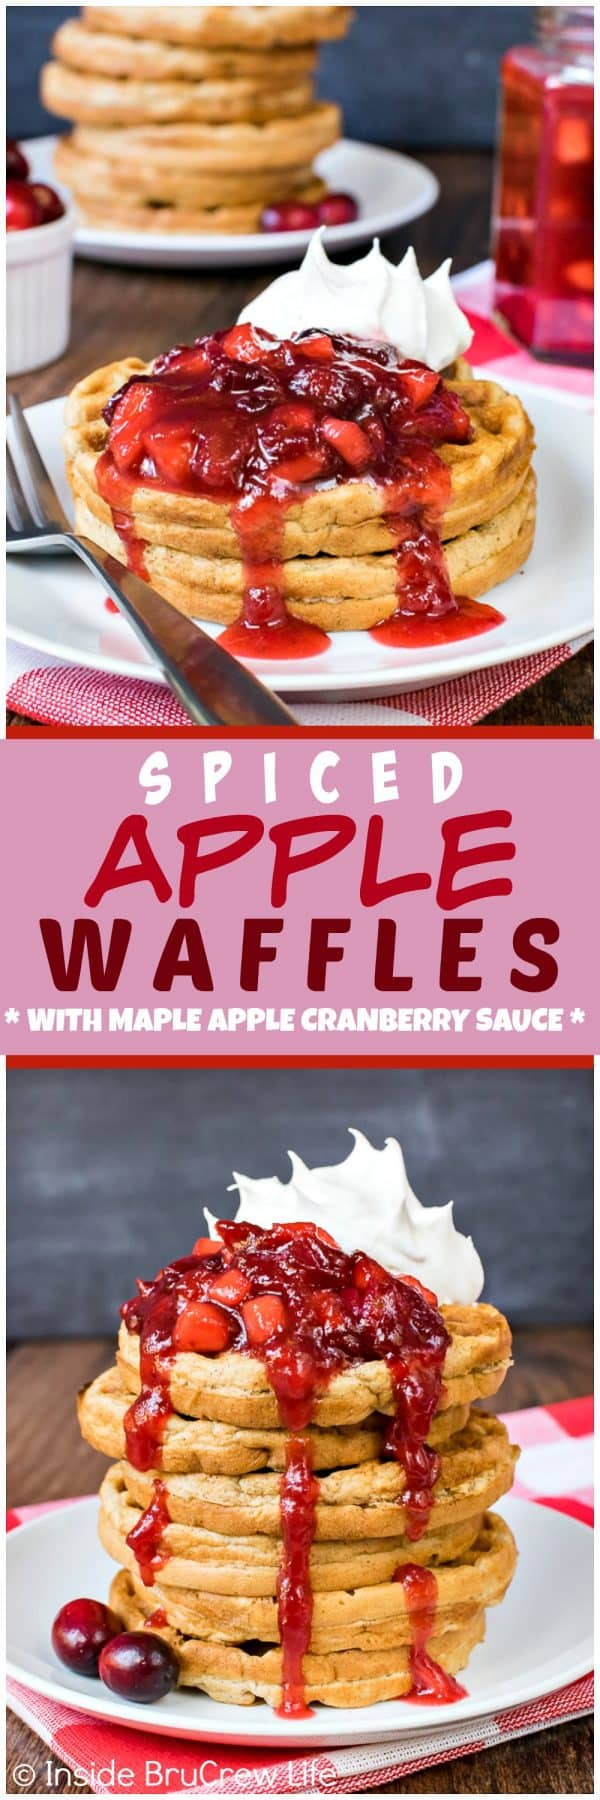 Spiced Apple Waffles - these easy homemade waffles are loaded with shredded apples and spices. Easy recipe to make ahead of time for breakfast.